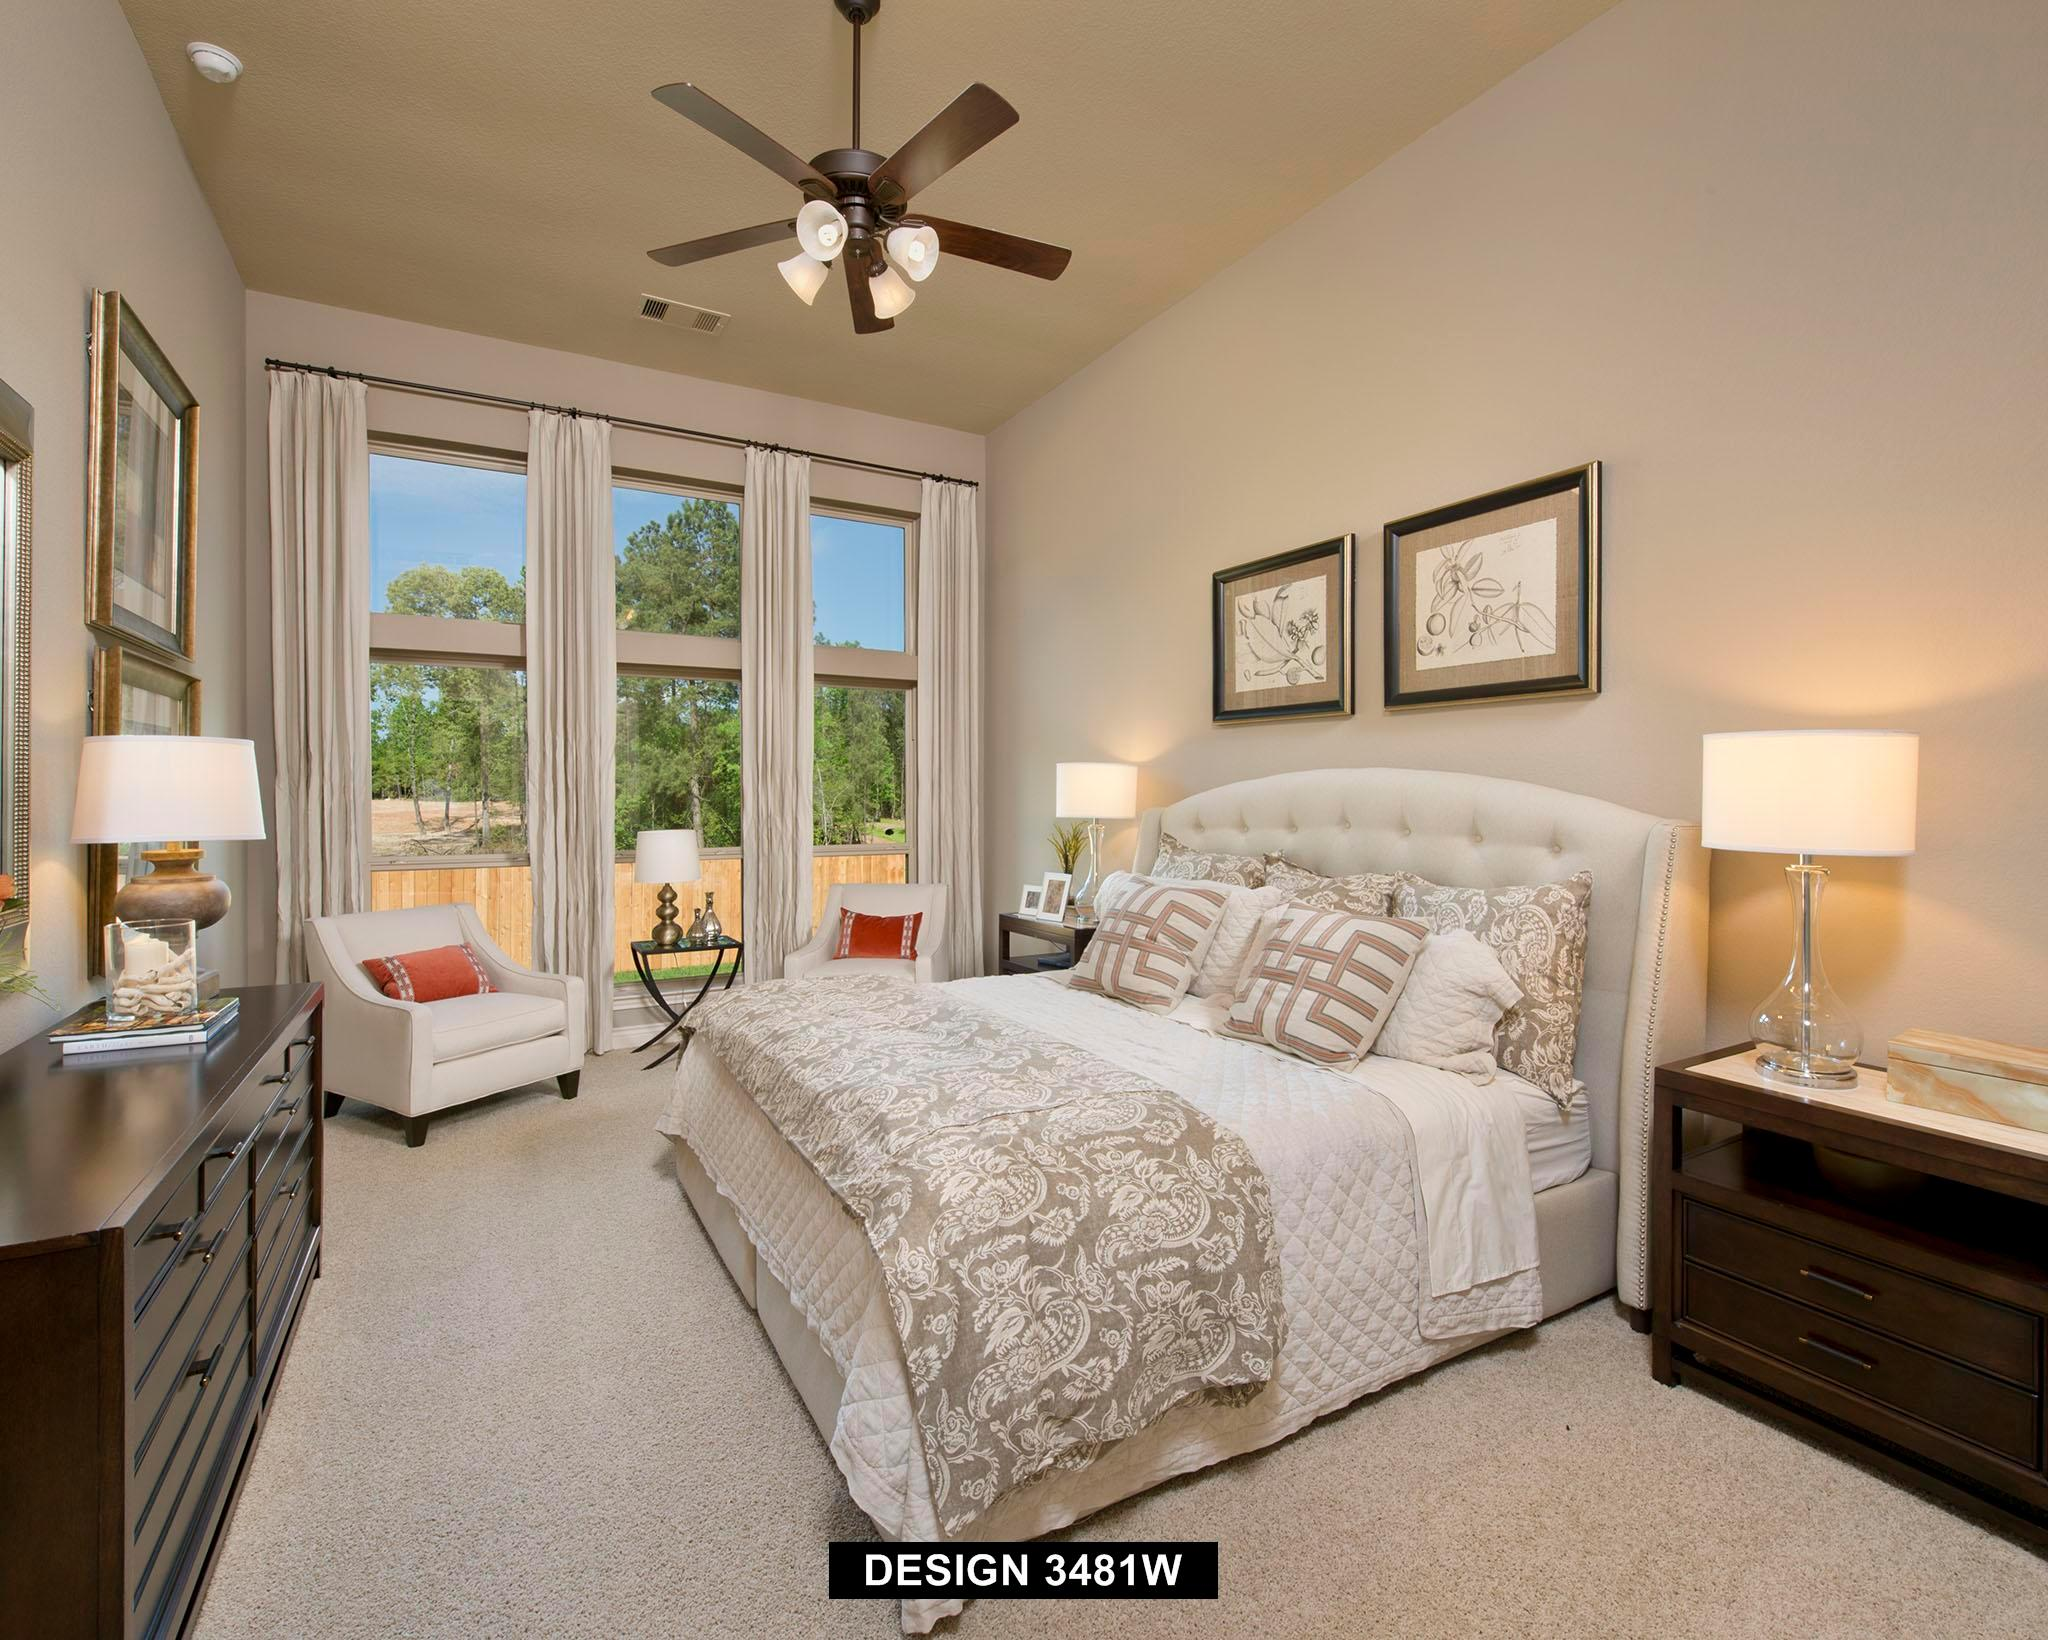 Bedroom featured in the 3481W By Perry Homes in Houston, TX